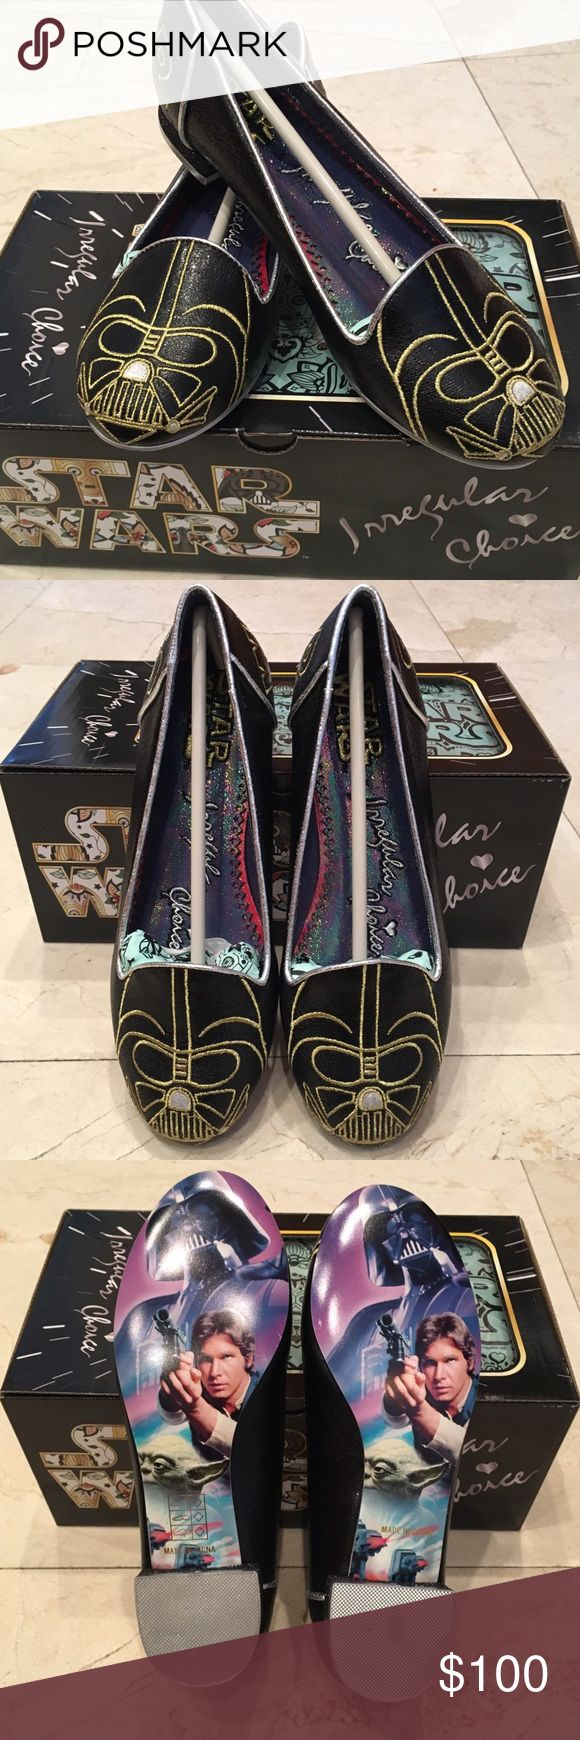 "Irregular Choice Star Wars Flats Darth Vader Flats - Limited Edition •Officially-licensed Star Wars merchandise  •Darth Vader's helmet embroidered in gold on both toes •""Star"" embroidered in gold on one heel and the word ""Wars"" on the other •Silver edge dressing with glitter on the heel itself •Iridescent inner •Full-color classic images on the sole They paid attention to all the details - even the tissue paper is Star-Wars-inspired Materials: Black metallic PU  Heel height: 0.7"" (flats)…"